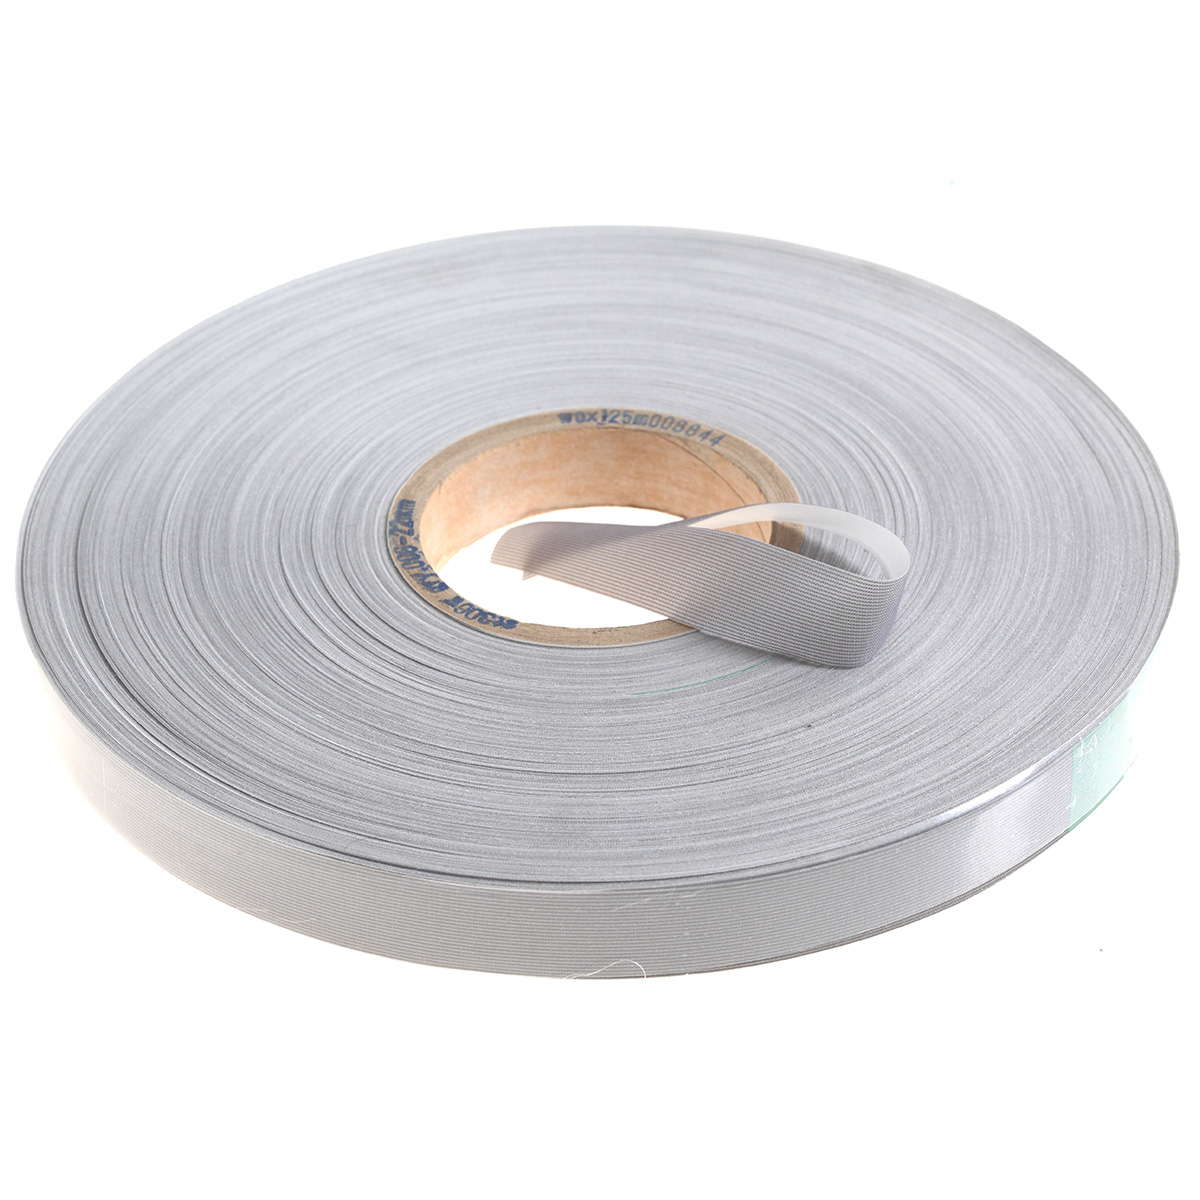 Waders and Jackets Repair Tape (1 m)